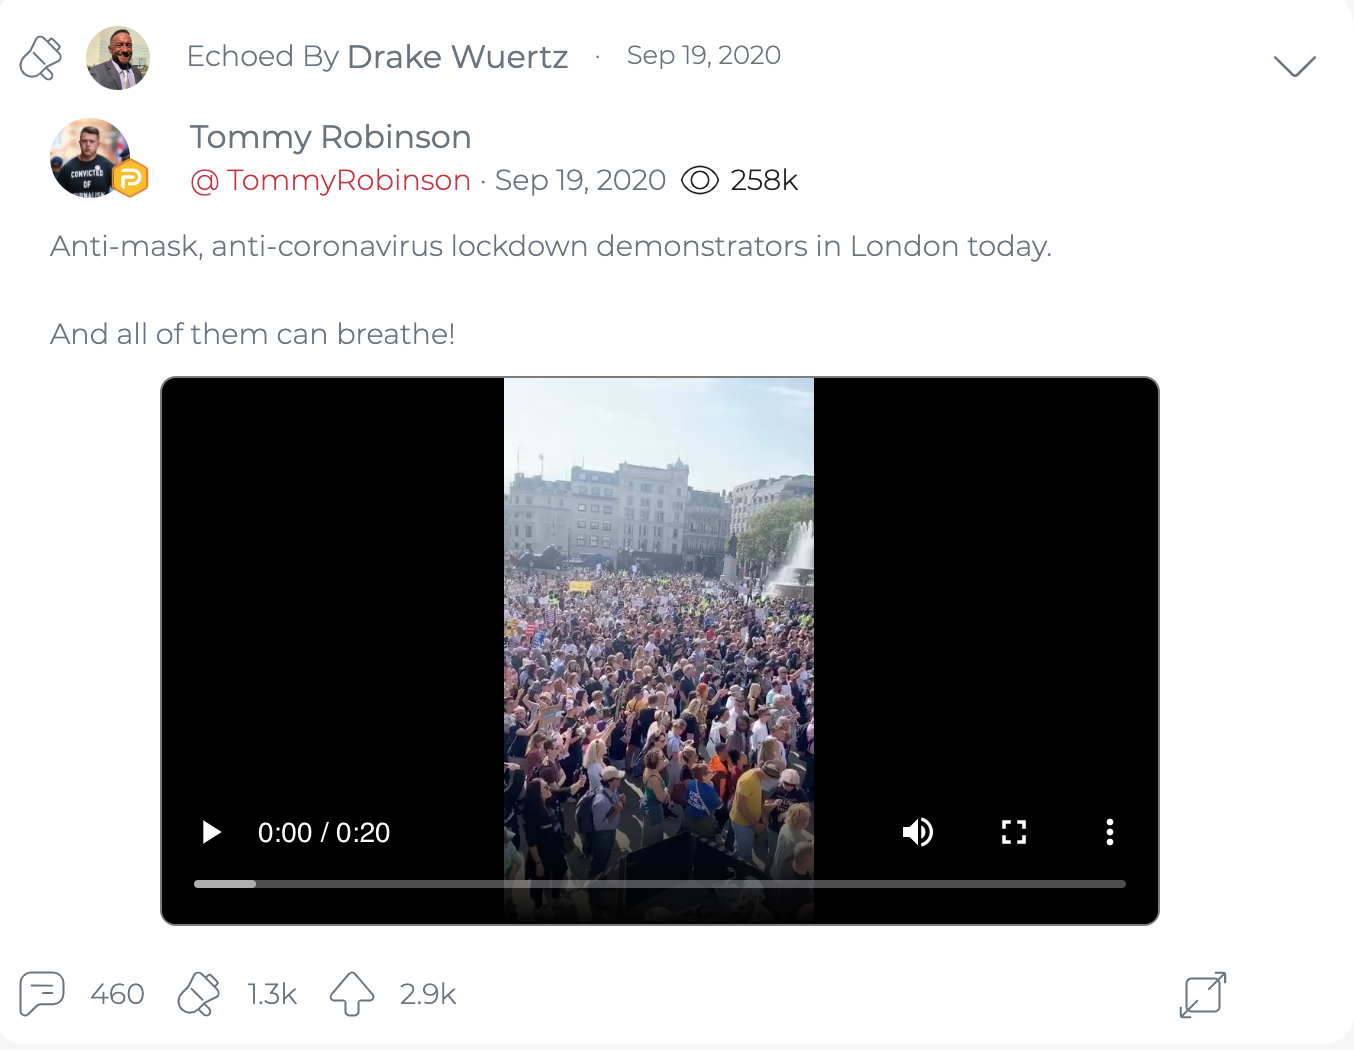 "@DrakeWuertzFLA's first ""echo"" of Tommy Robinson, sharing a September 19, 2020 post about a video of an anti-mask rally in London. (Image: Parler screenshot)"